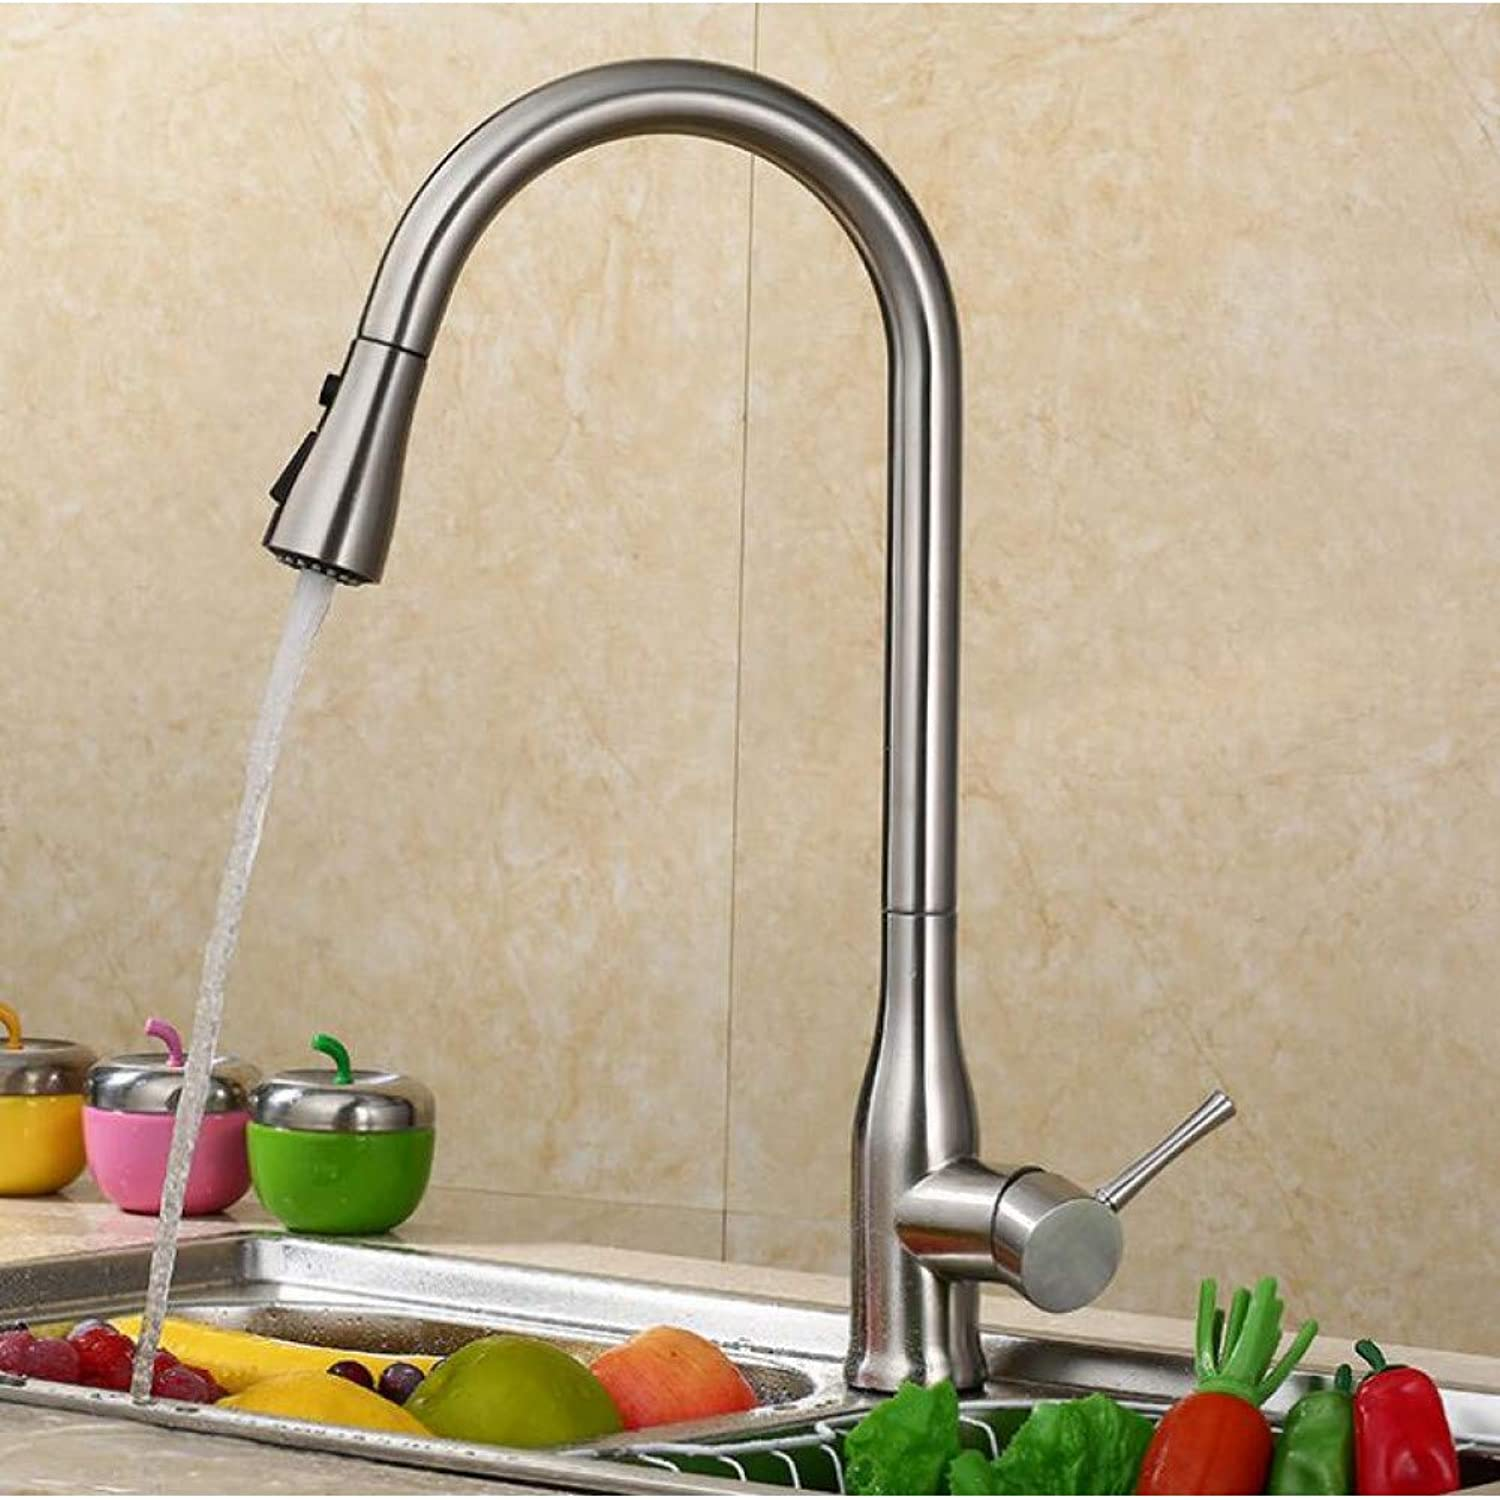 YHSGY Kitchen Taps Pull Out The Kitchen Faucet Sink Faucet Hot and Cold Sink Faucet Copper Telescopic redating Faucet Xt-60